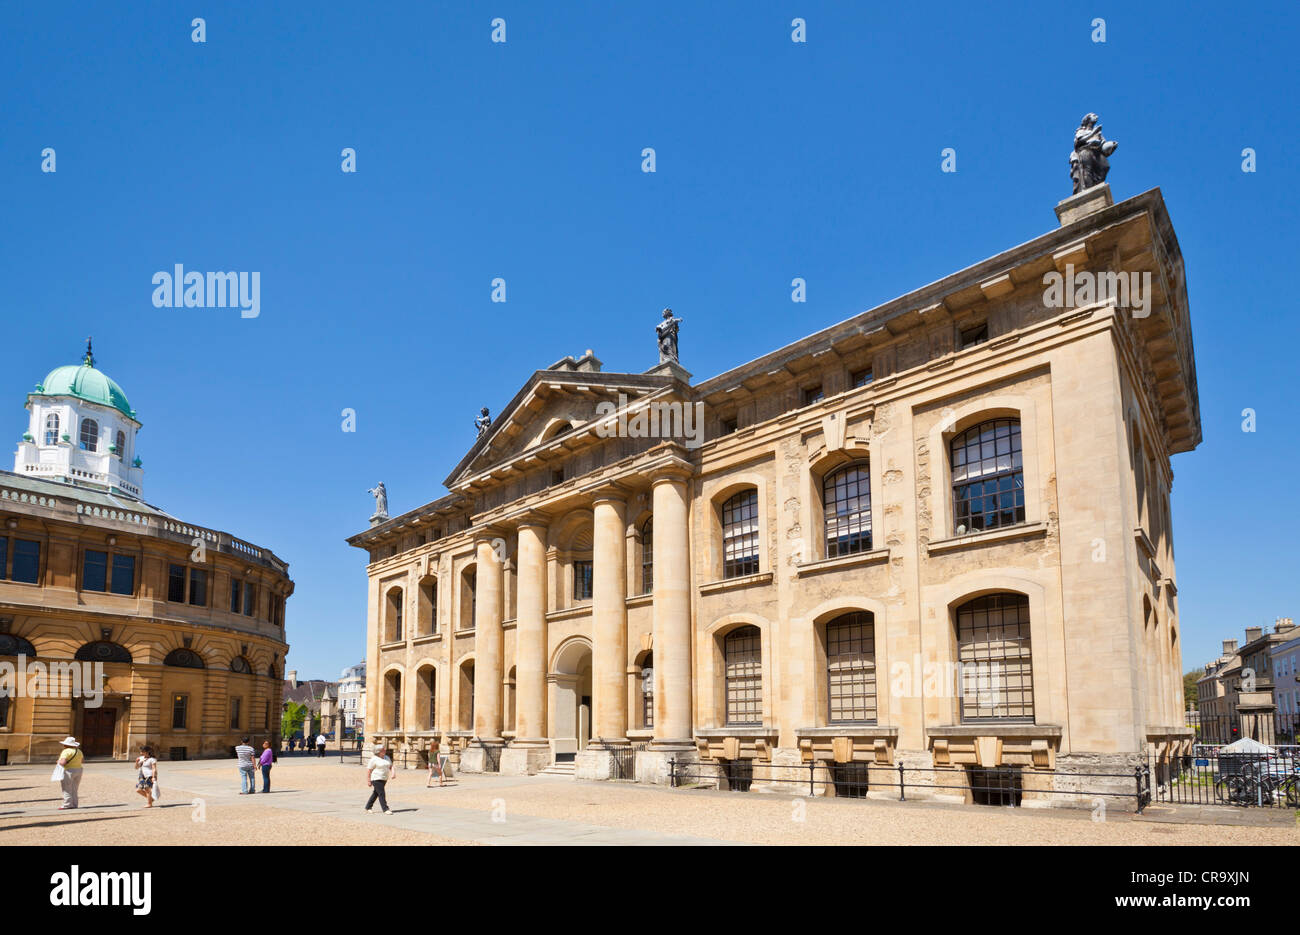 New Bodleian Library Oxford Oxfordshire England UK GB EU Europe Photo Stock